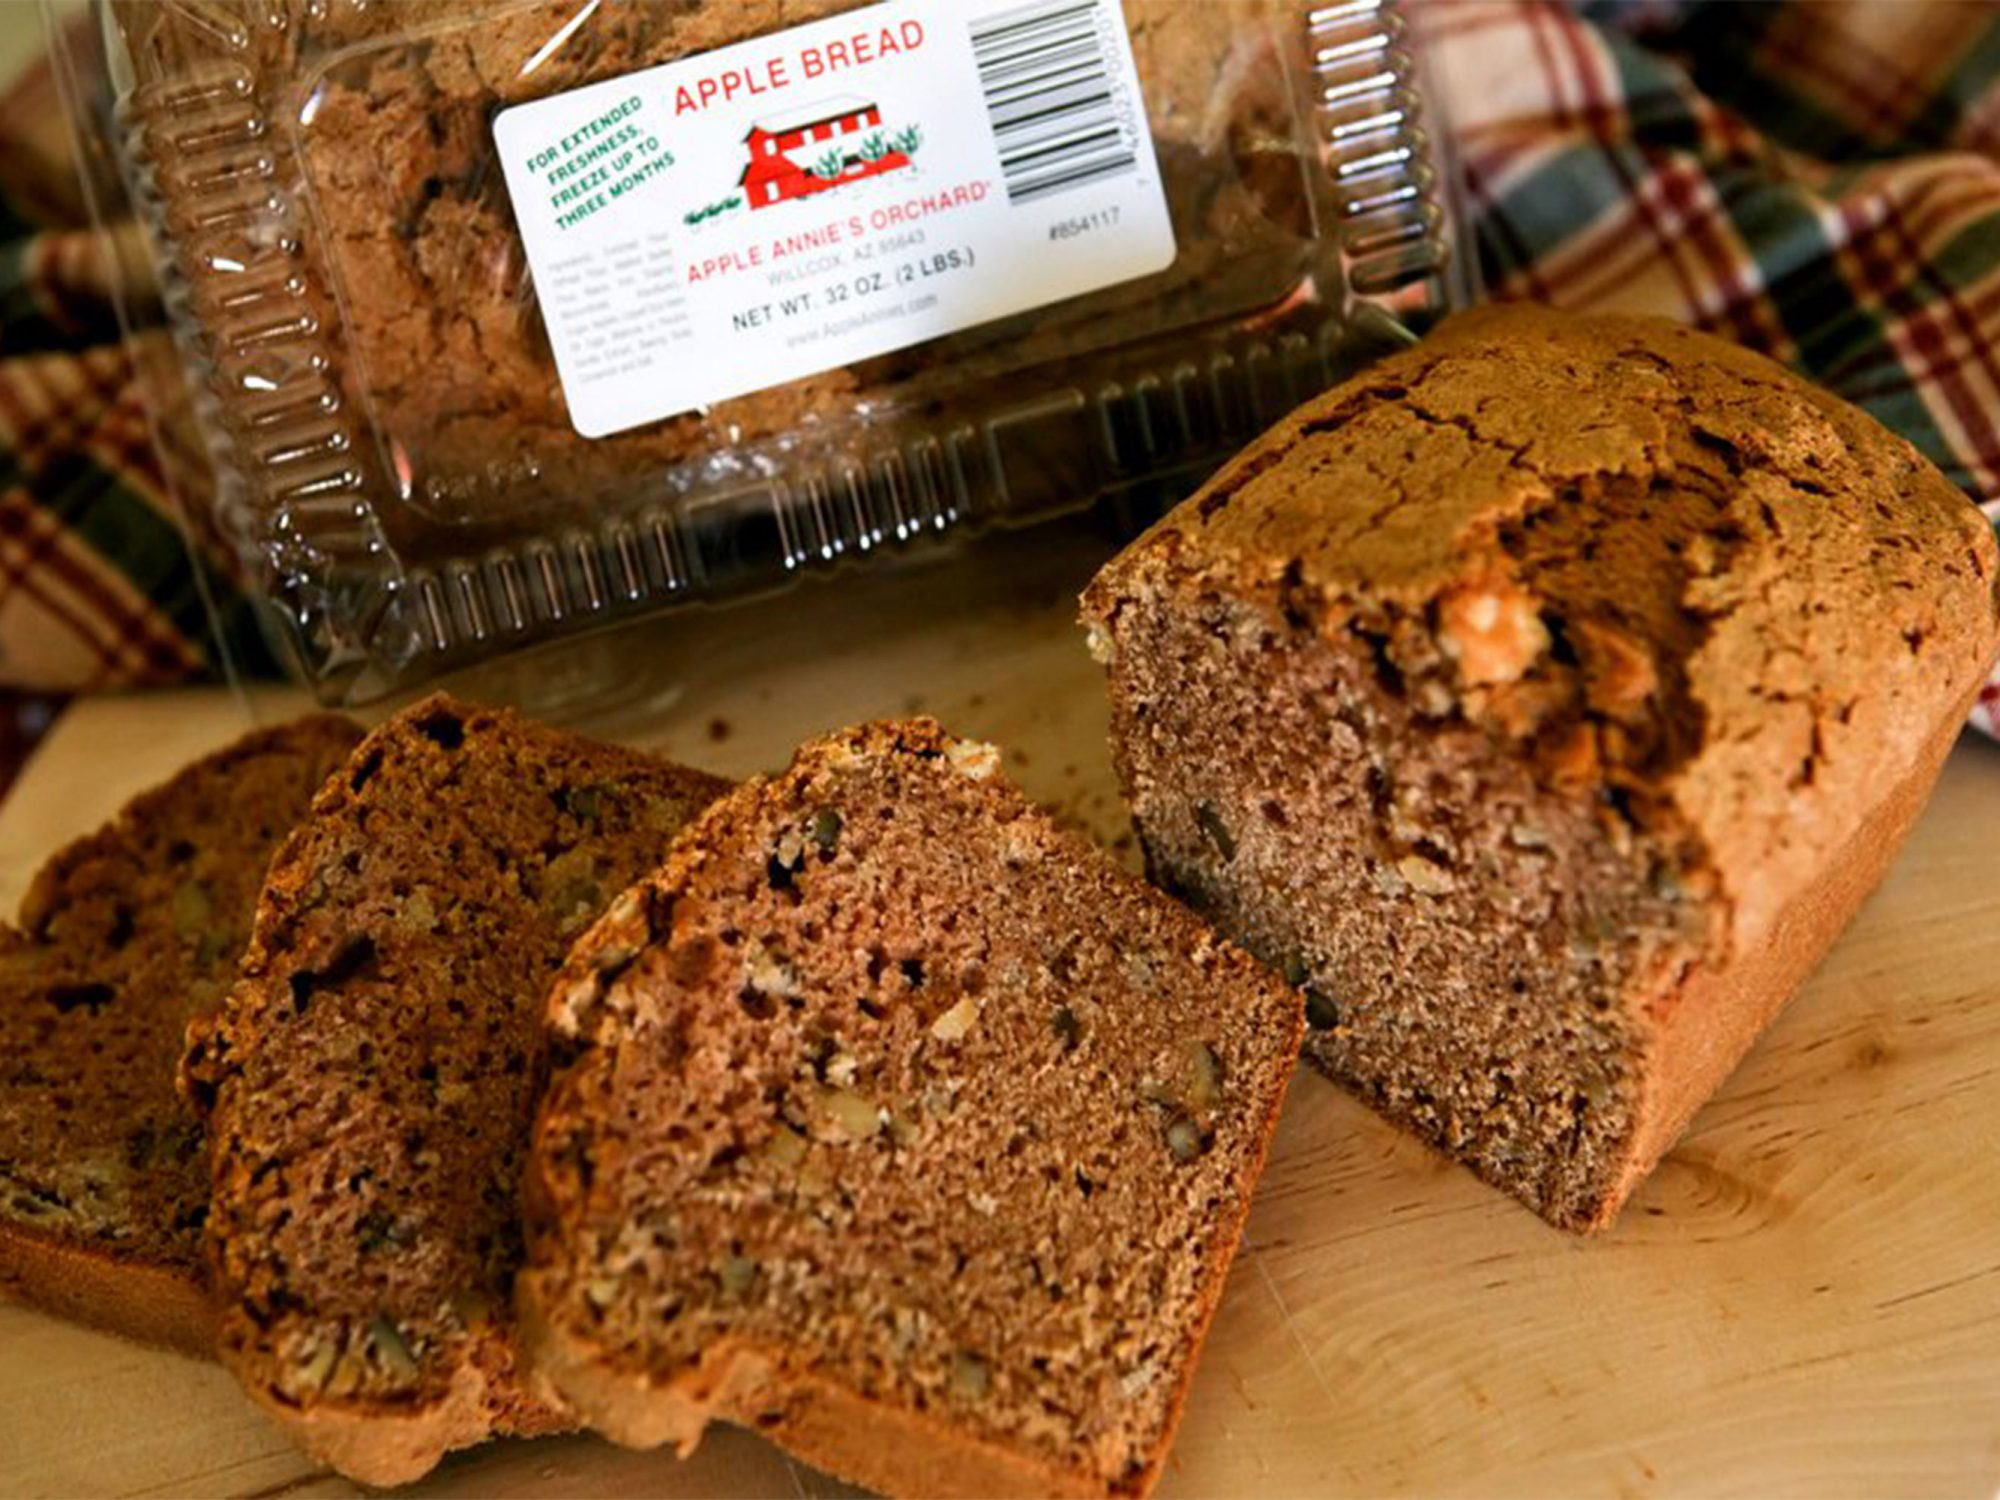 Apple Annie's Orchard Apple Bread Loaf